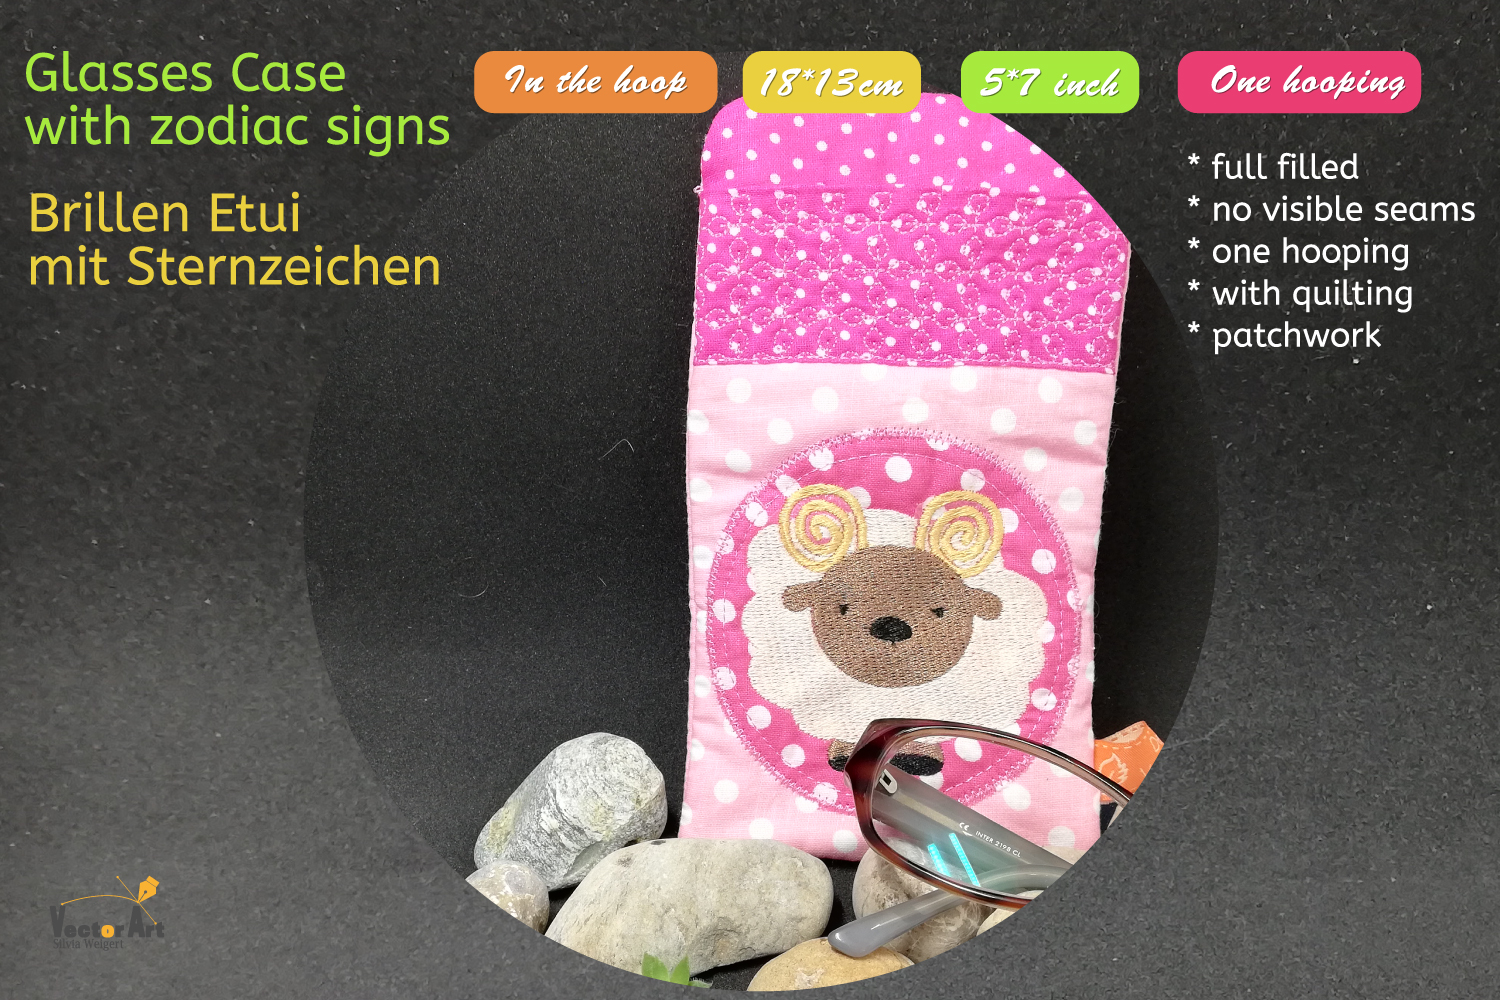 ITH - Glasses Case with Zodiac sign Aries - Embroidery file example image 5